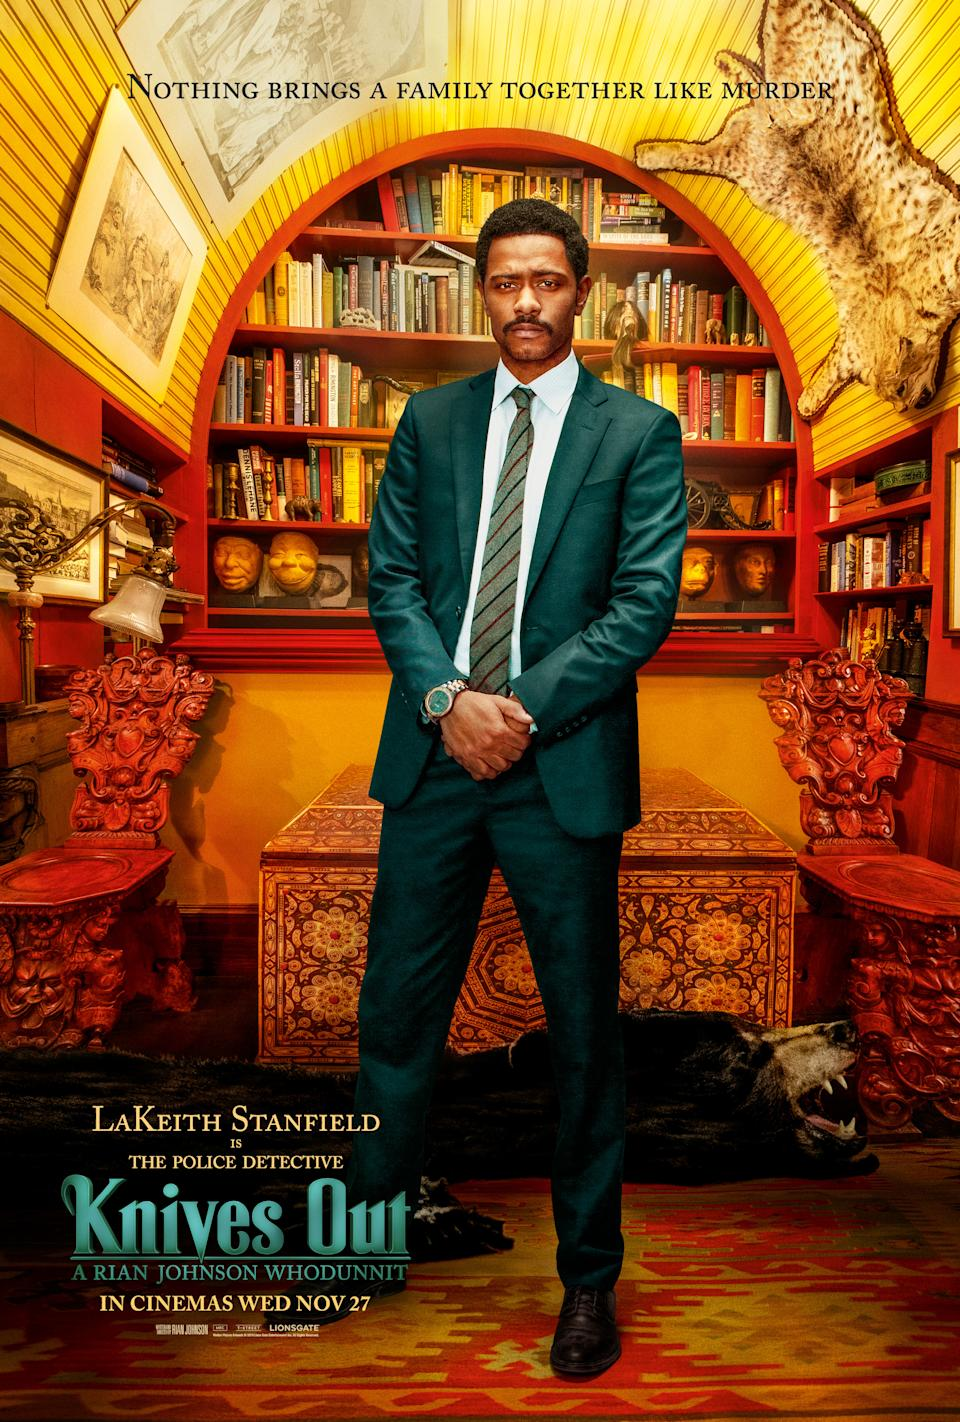 Sorry To Bother You's Lakeith Stanfield as Lt. Elliot.